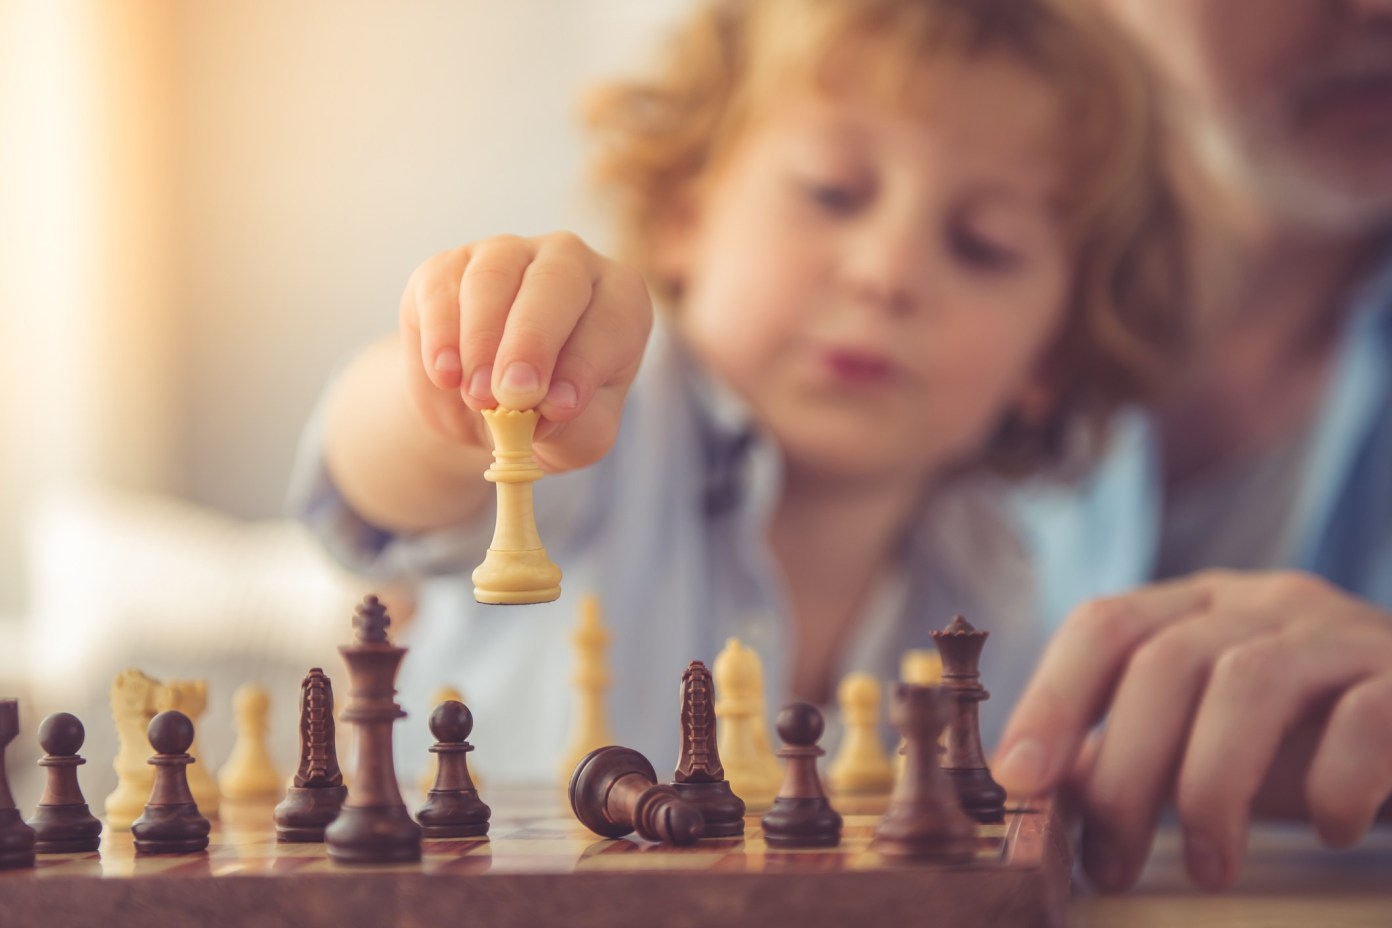 The Top 10 Health Benefits of Chess